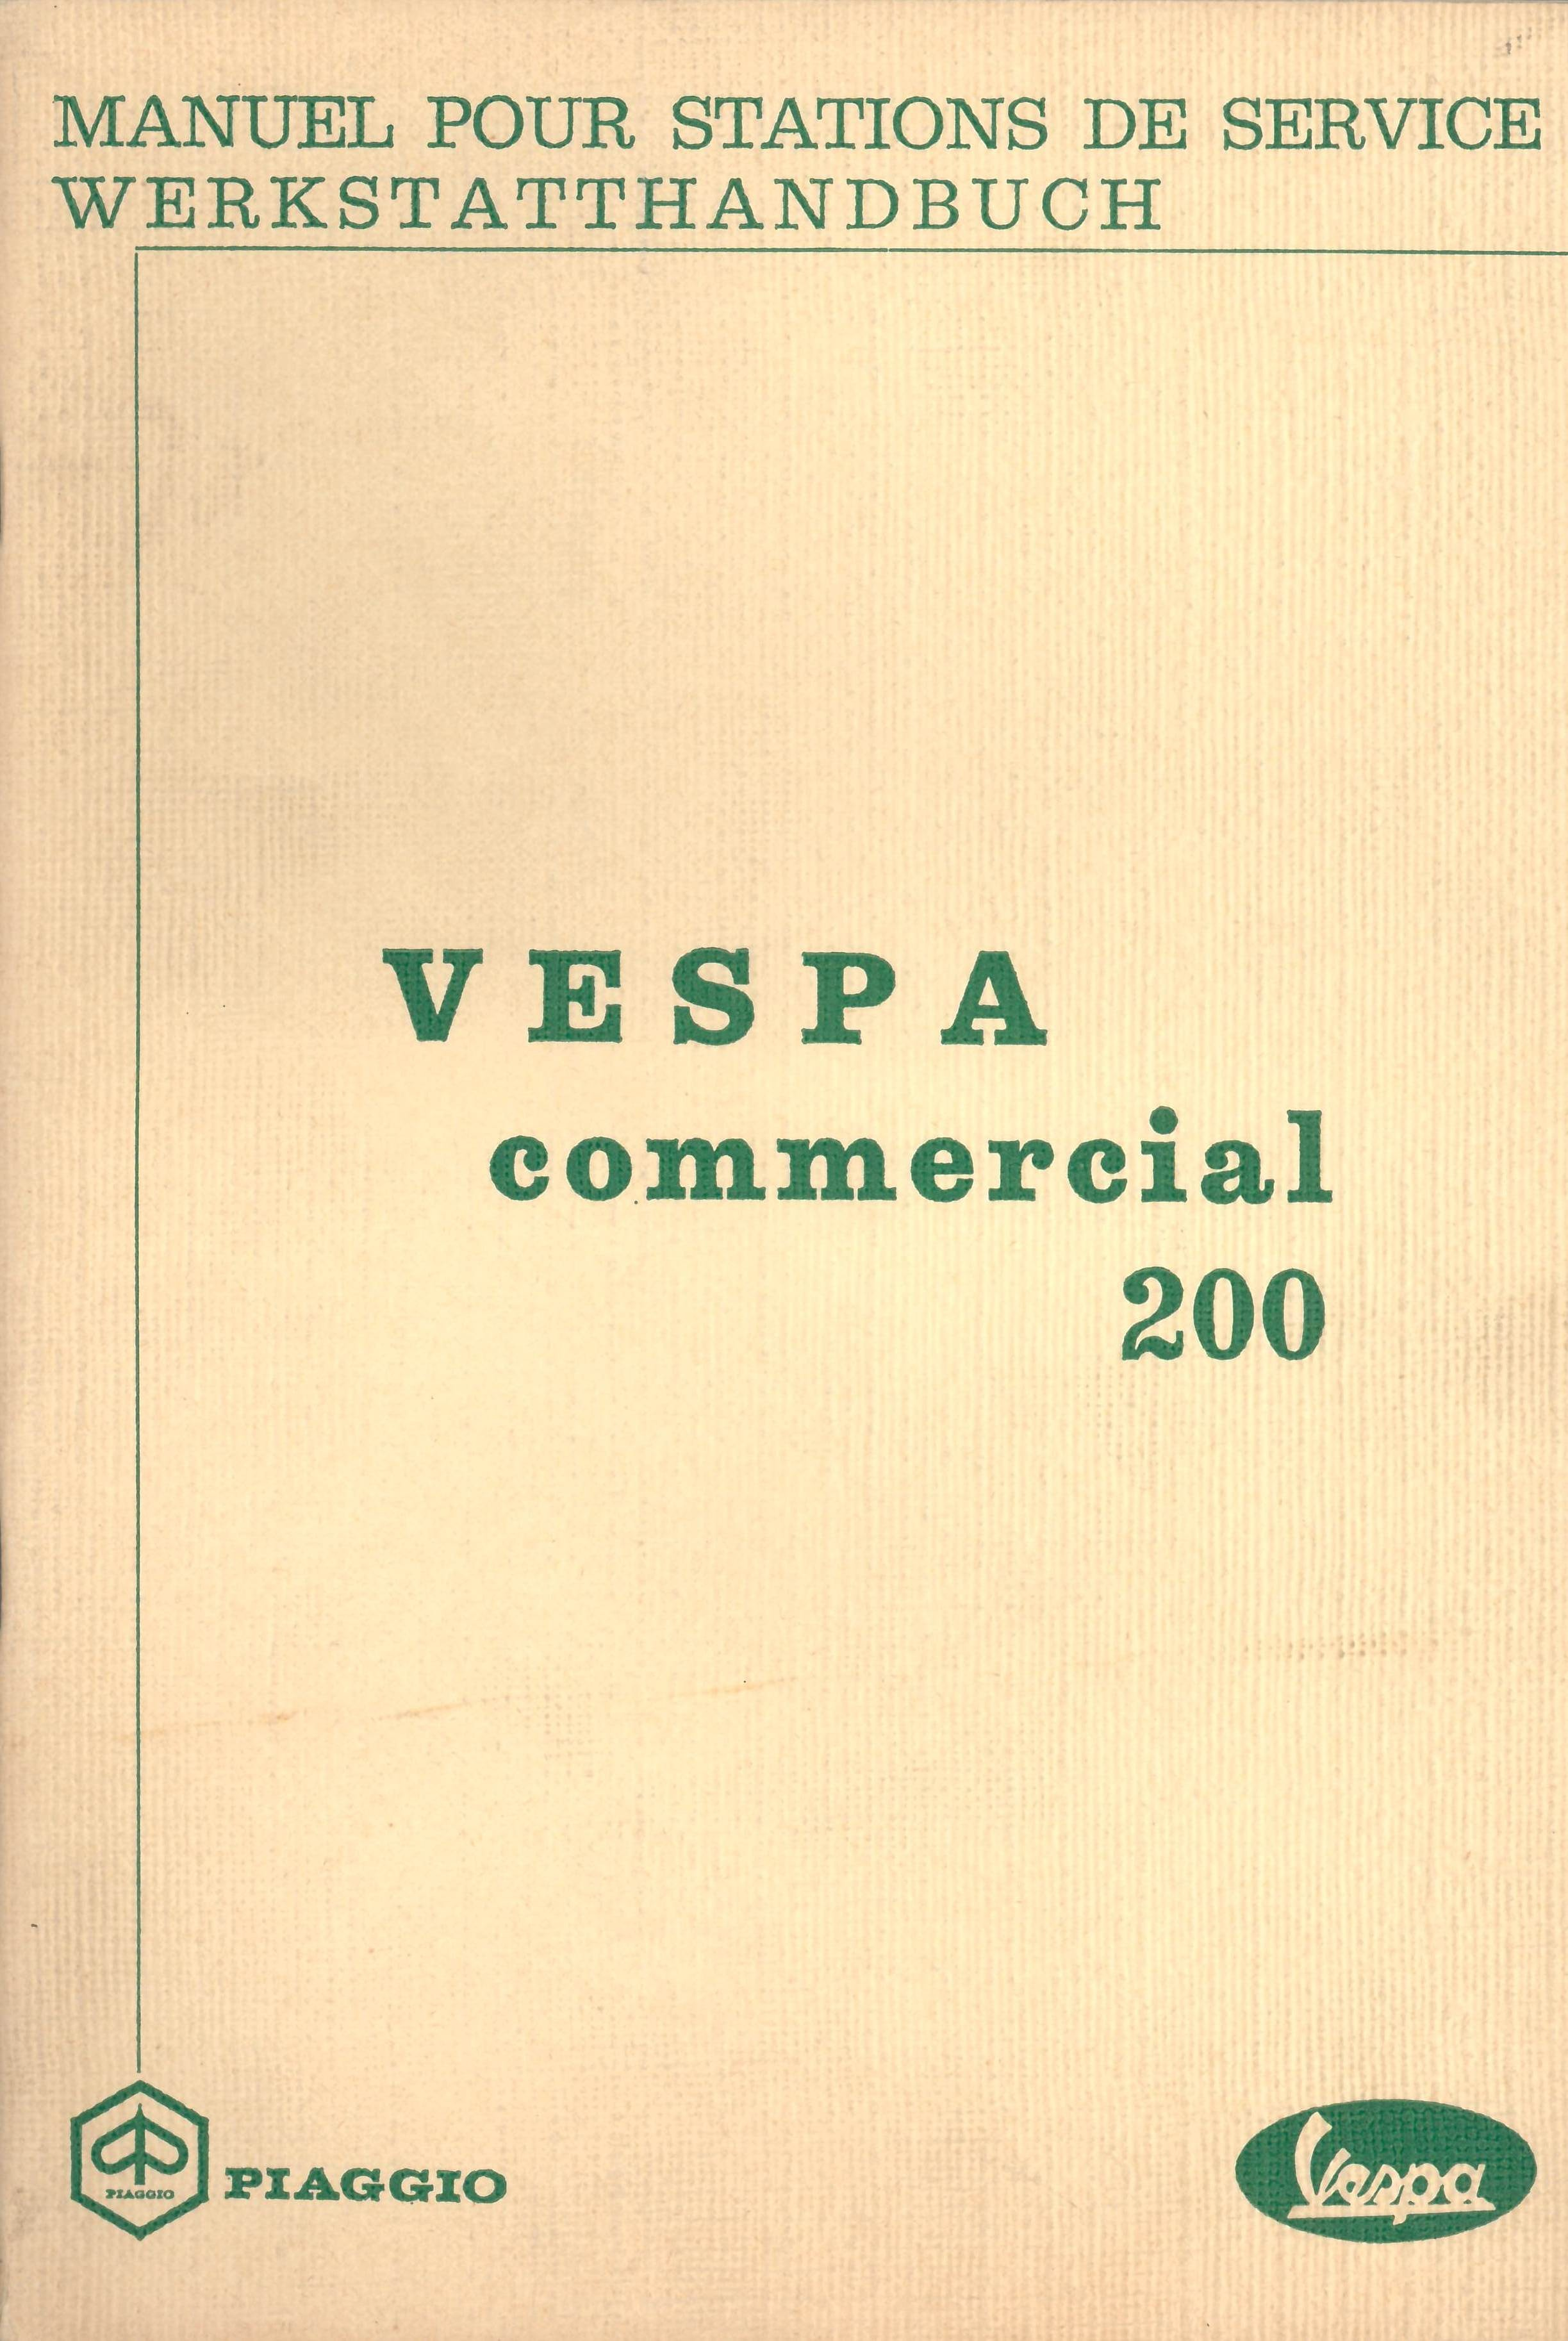 Workshop Manual Piaggio Ape 50 TL1T, Vespa Commercial 200 TL1T - Vespadoc